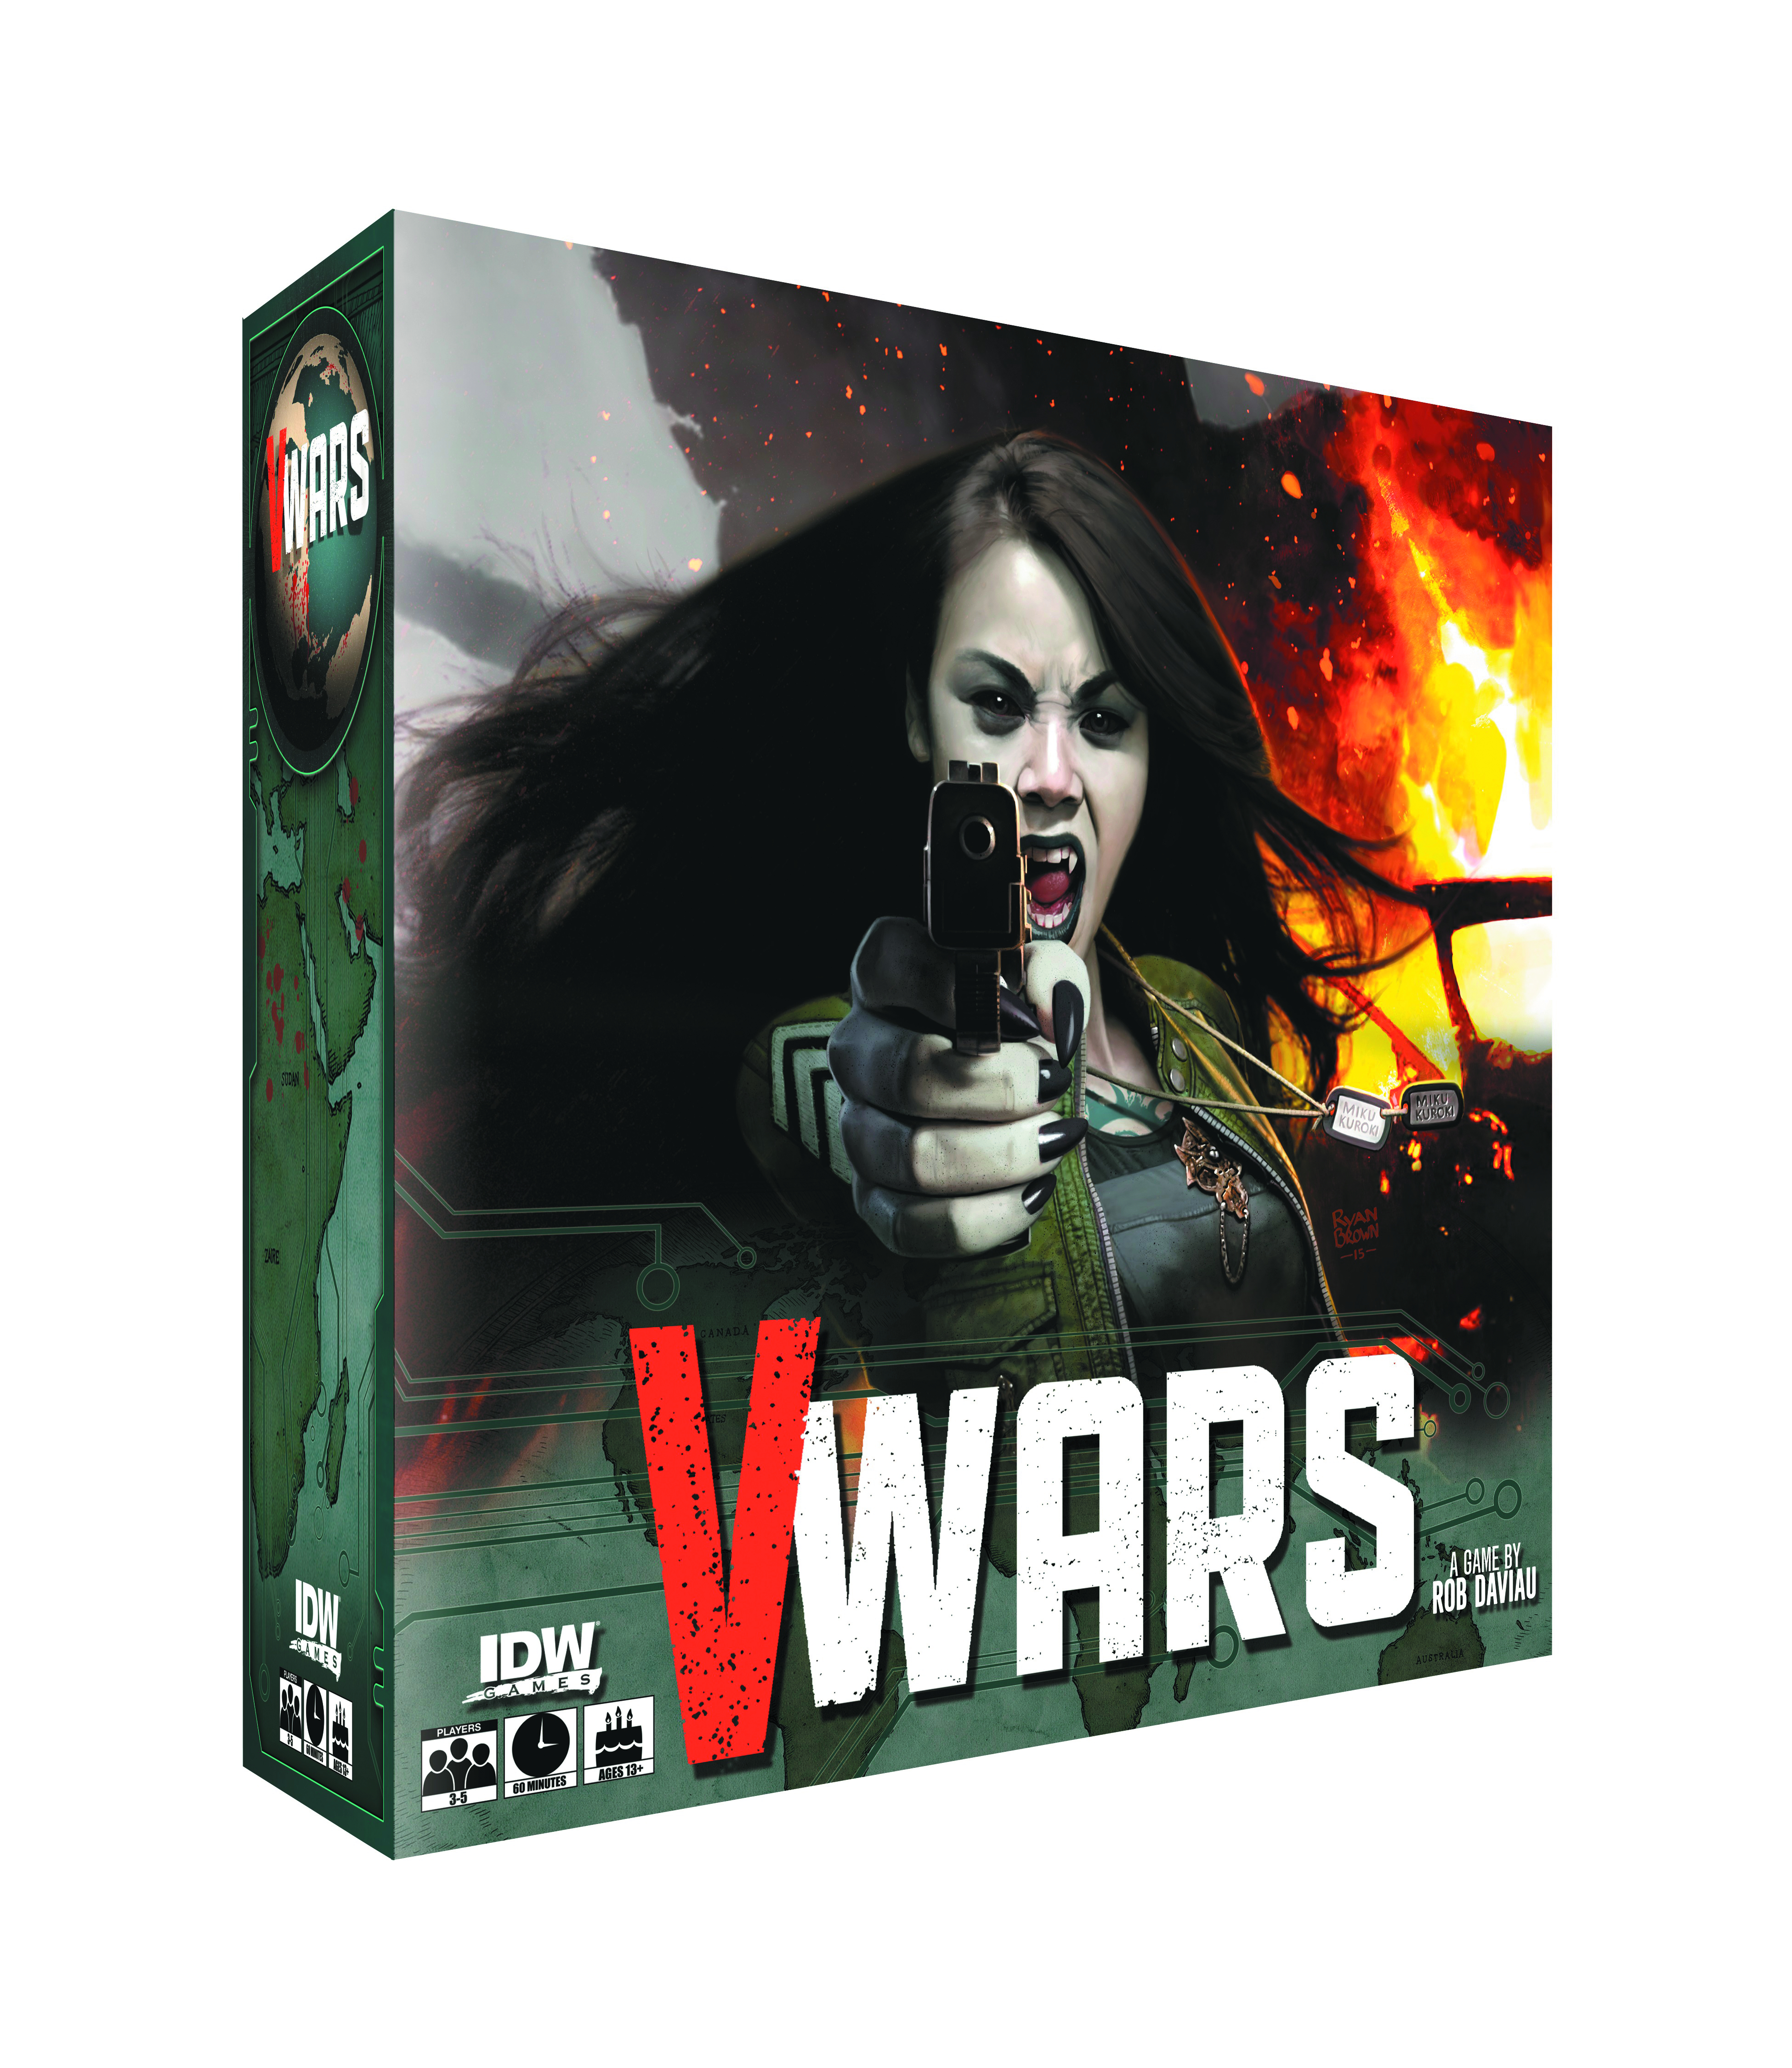 V-WARS BLOOD & FIRE BOARD GAME